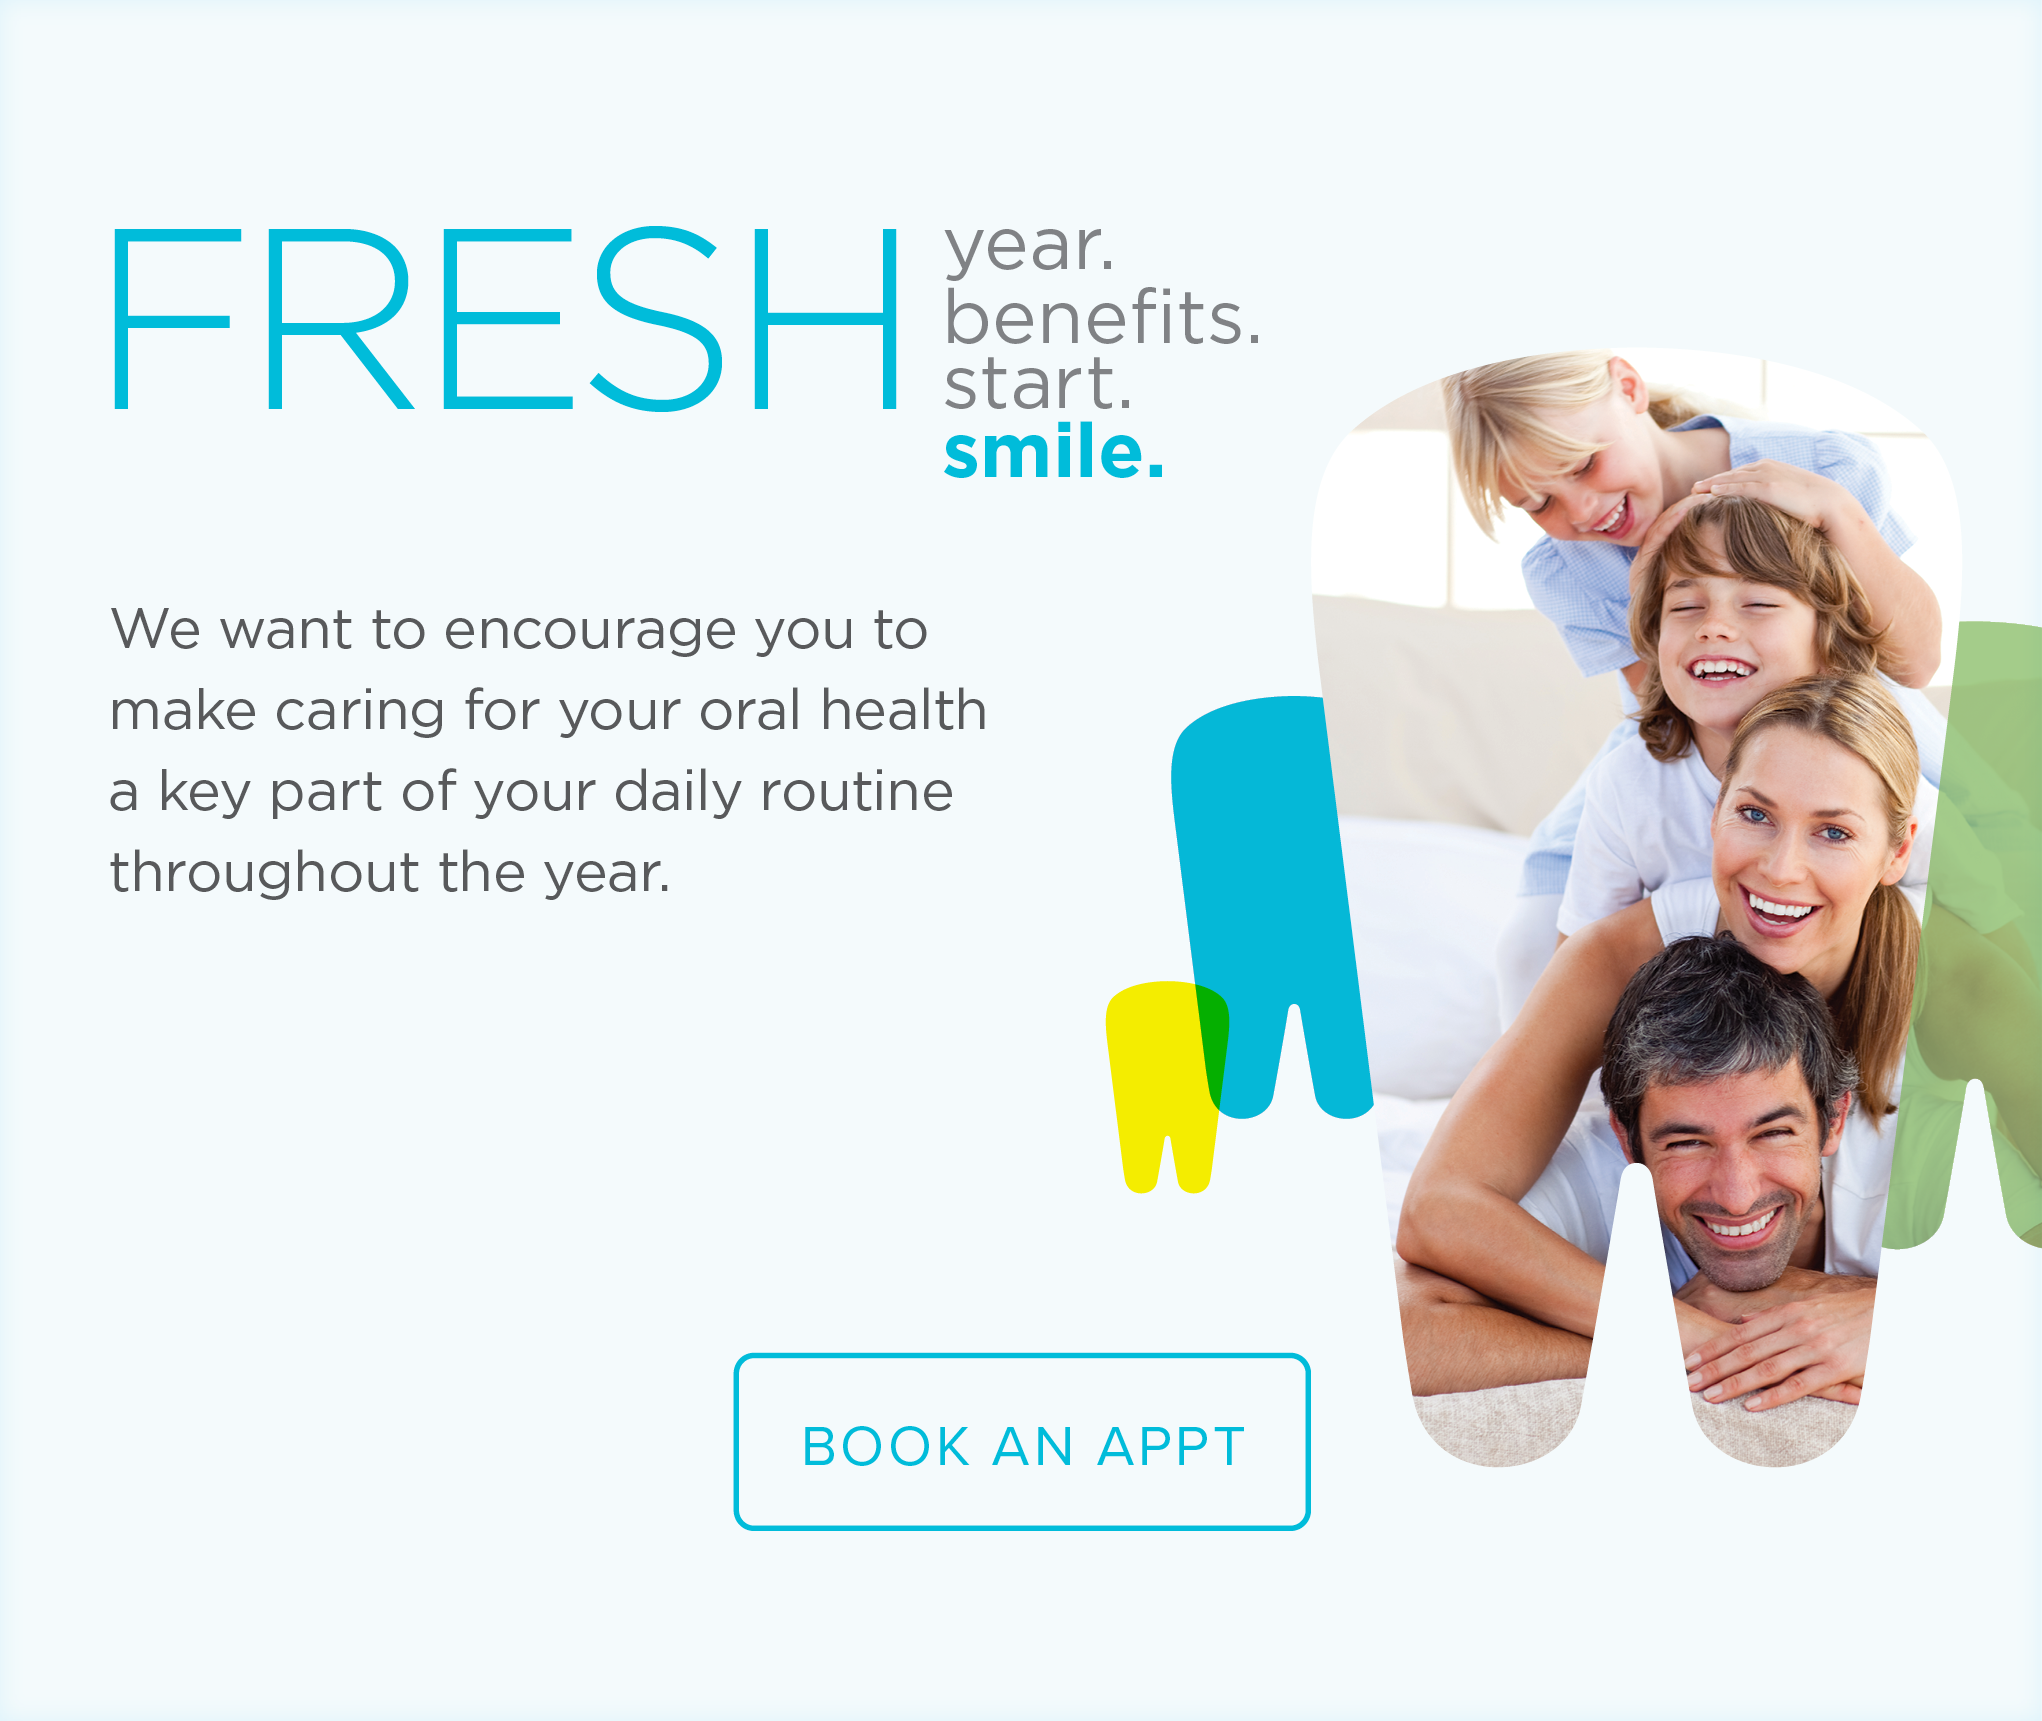 Vista Dental Group - Make the Most of Your Benefits